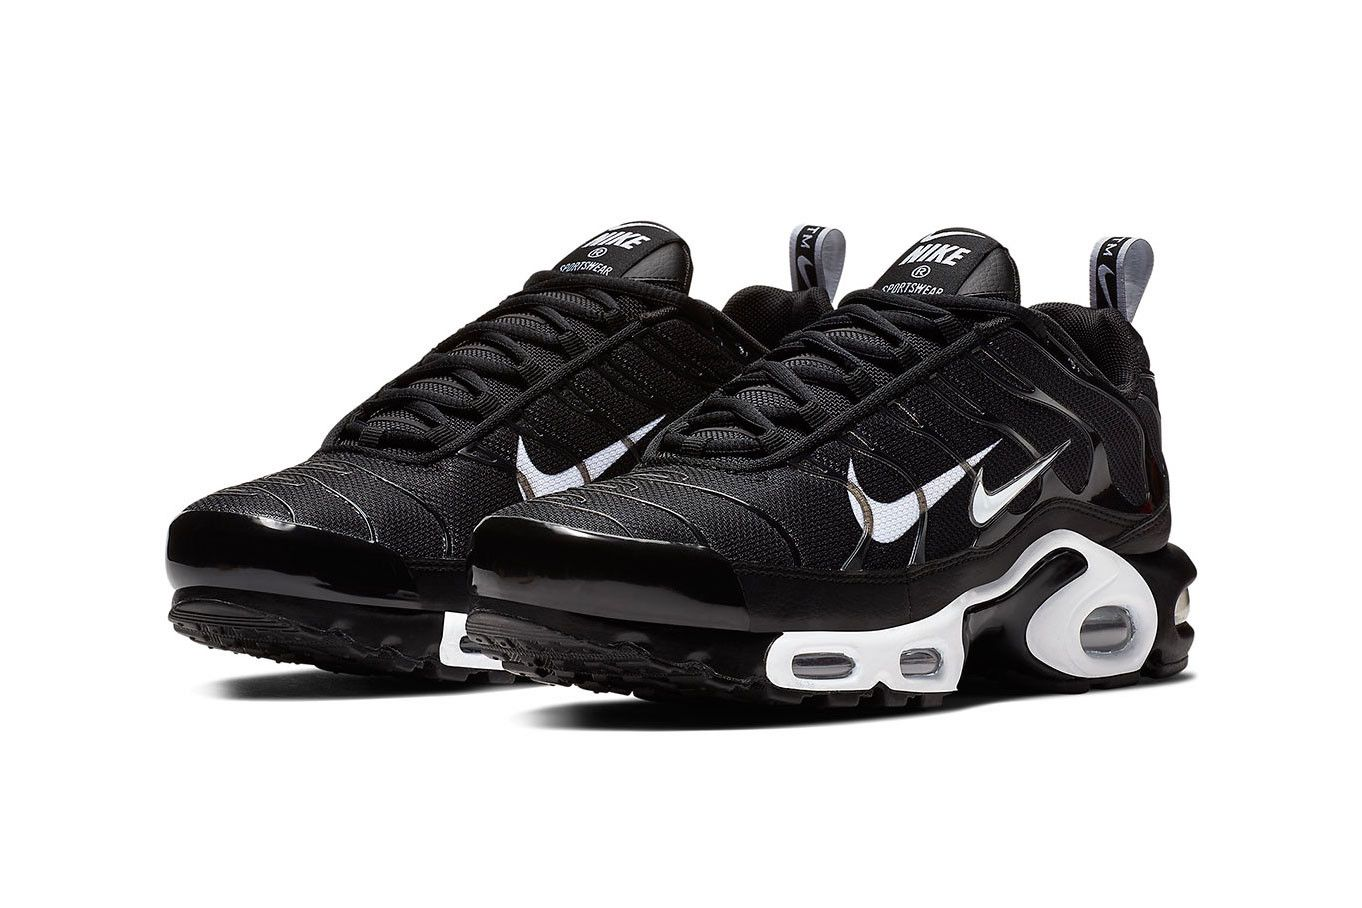 c16ade006f Nike Air Max Plus